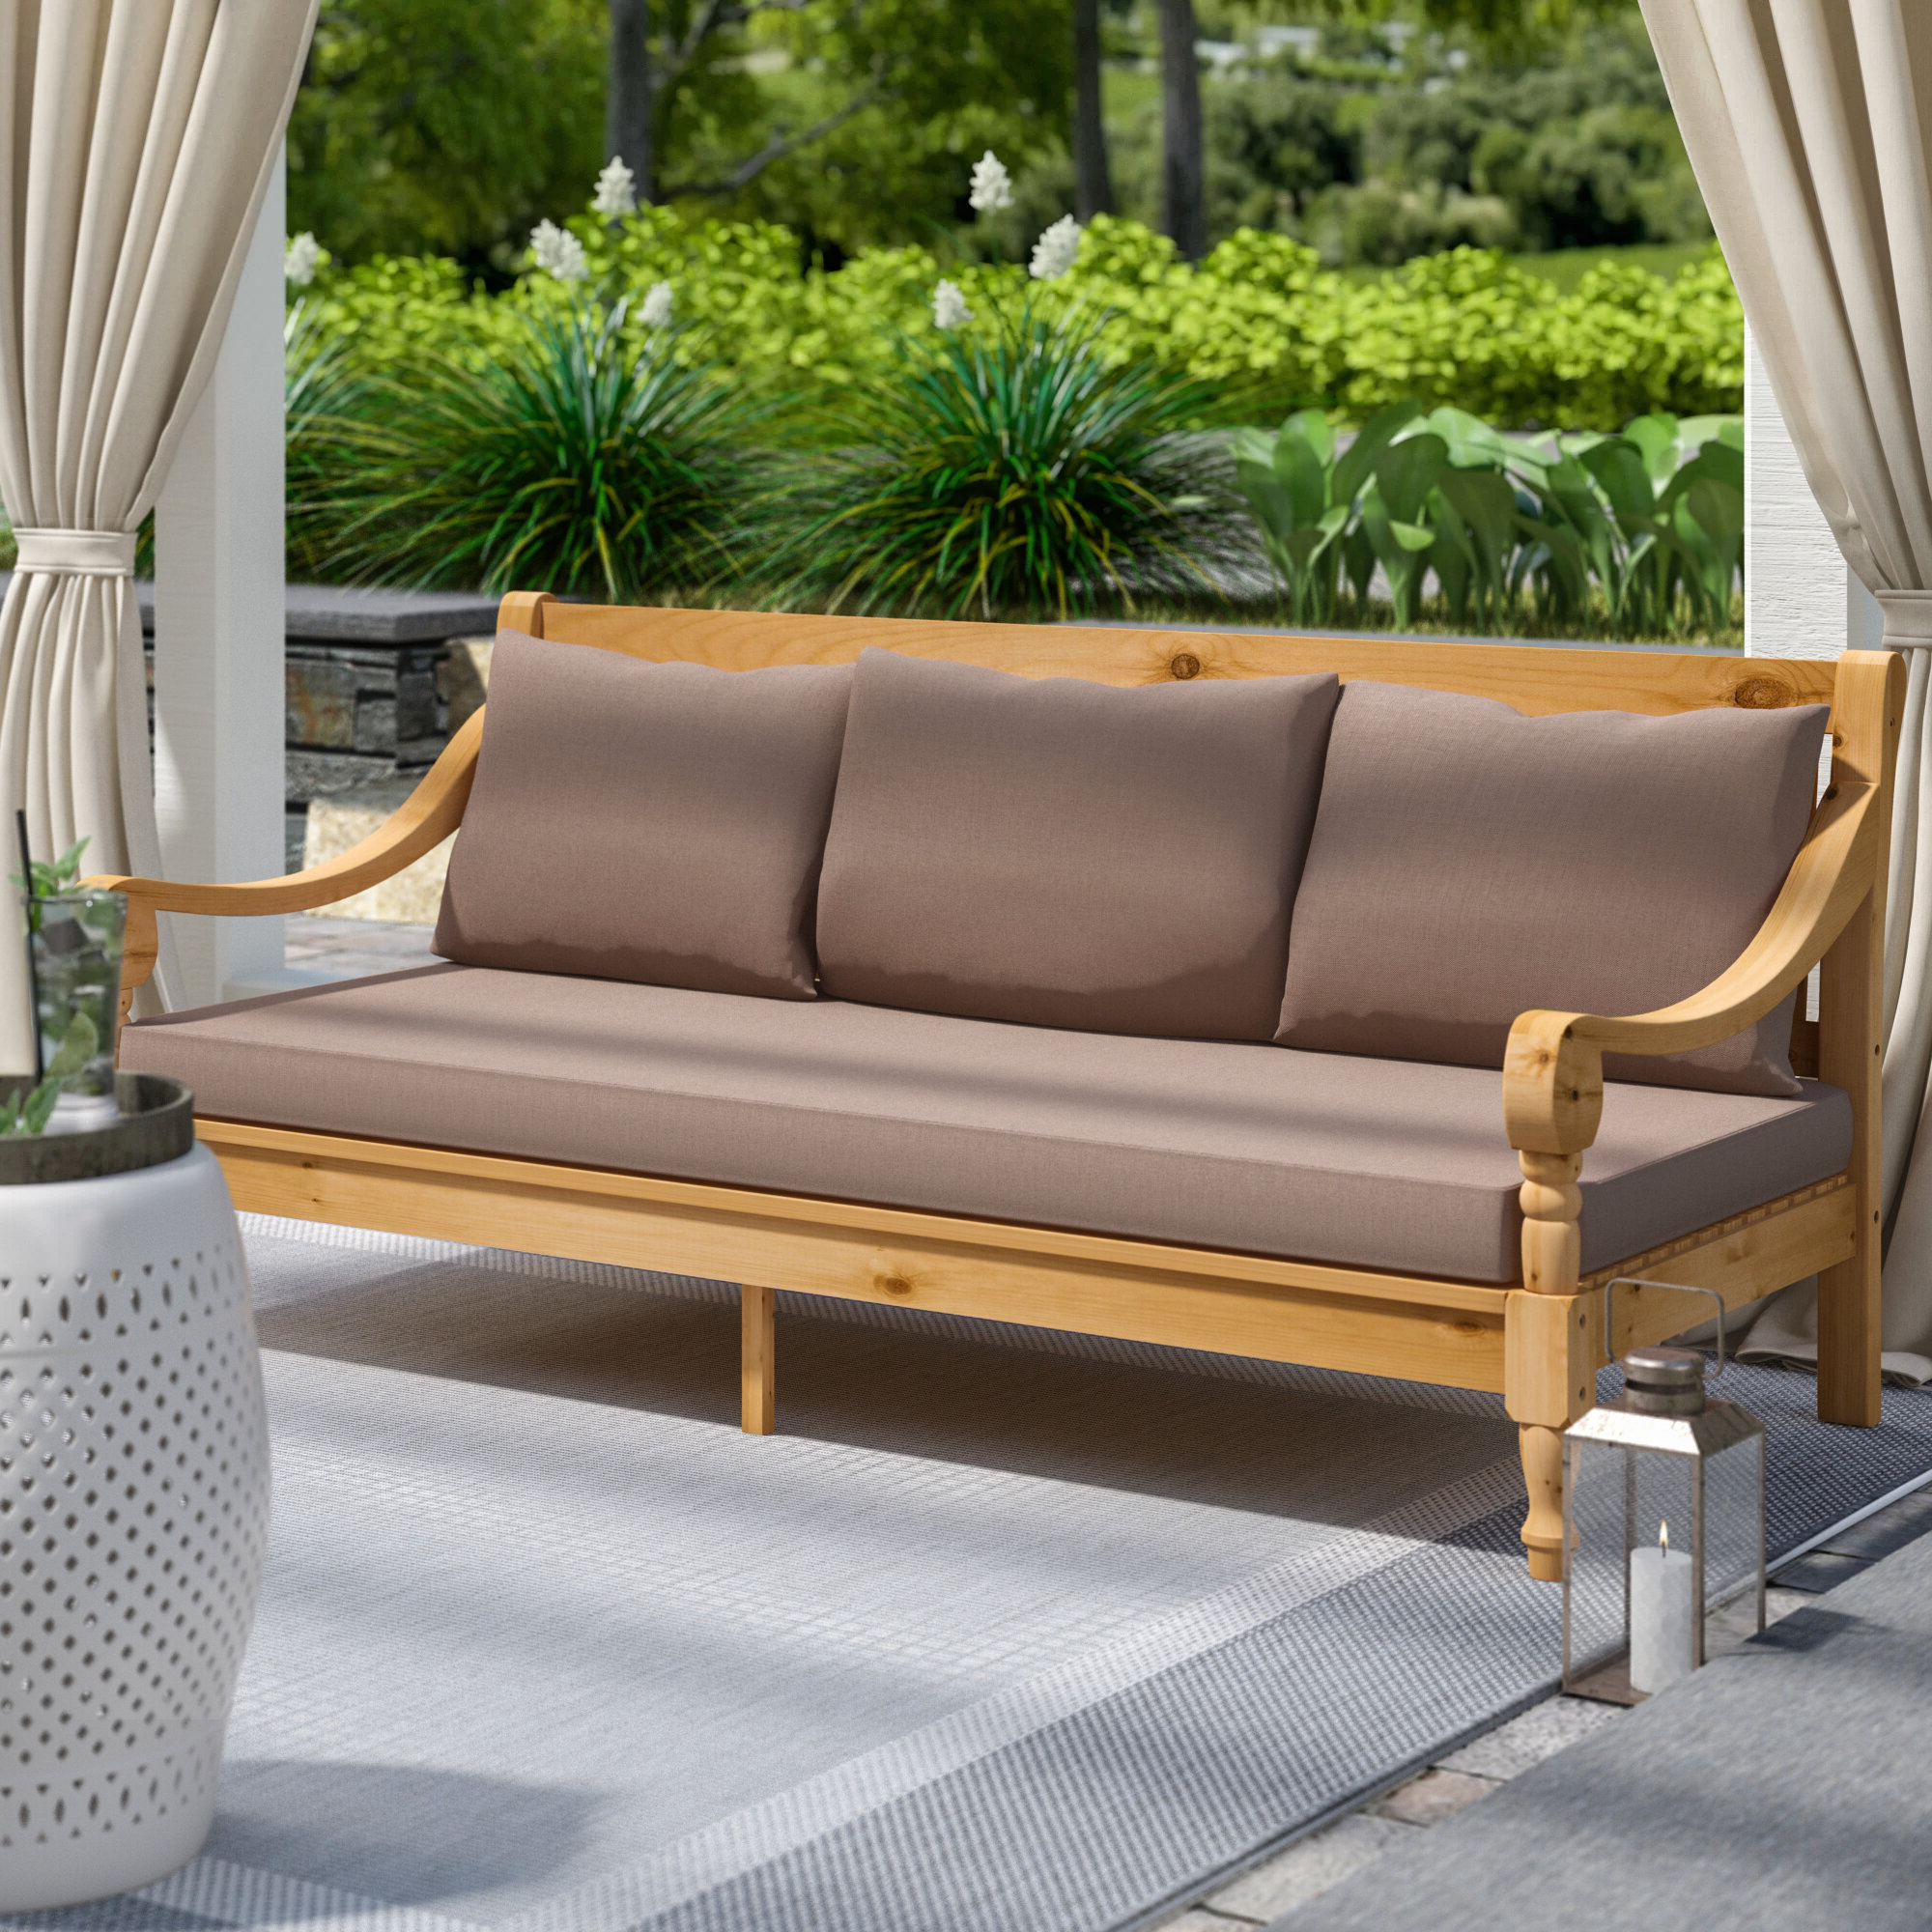 Roush Teak Patio Daybed With Cushions Regarding Popular Grosvenor Bamboo Patio Daybeds With Cushions (View 14 of 20)